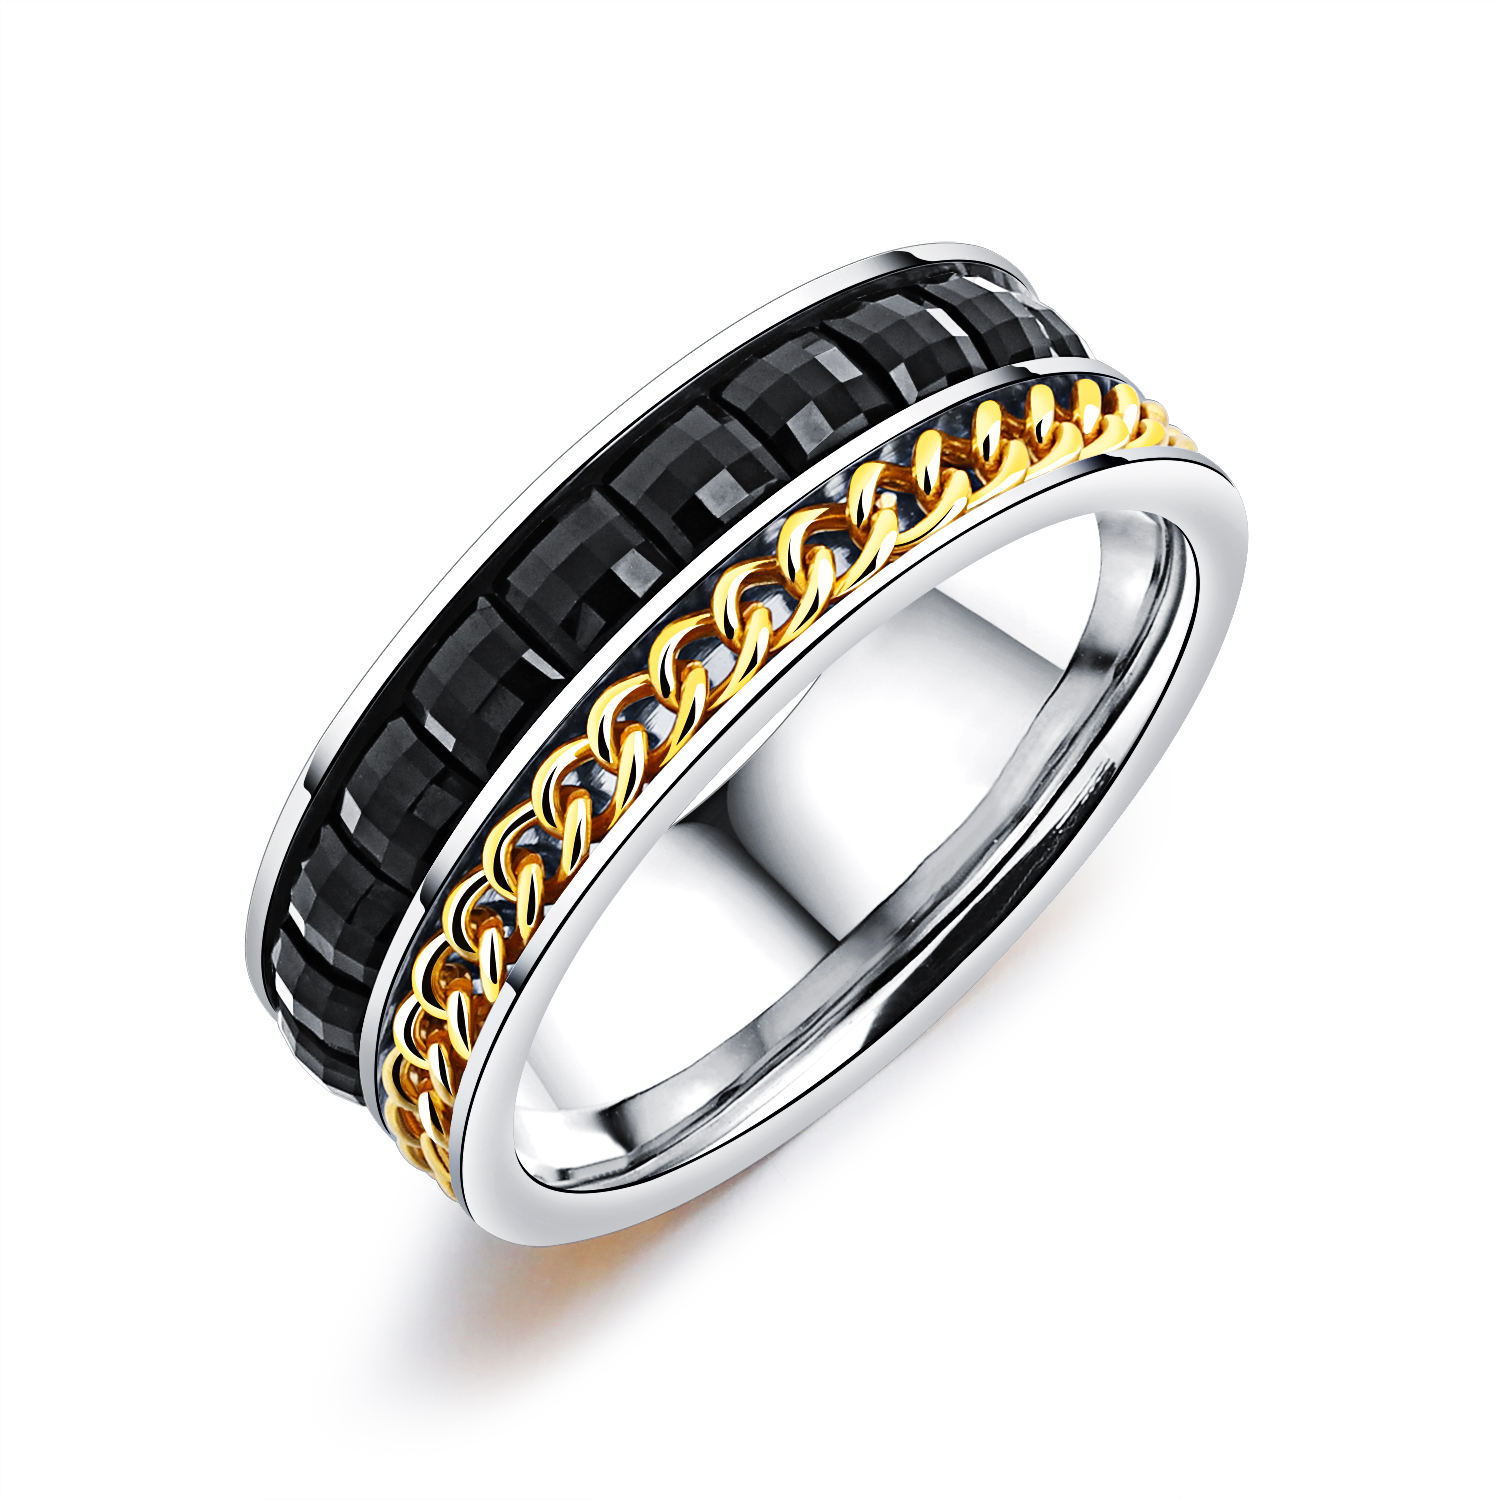 New Fashion Shiny 결정 링 Jewelry 대 한 Men 쿨 Gift Finger Rings